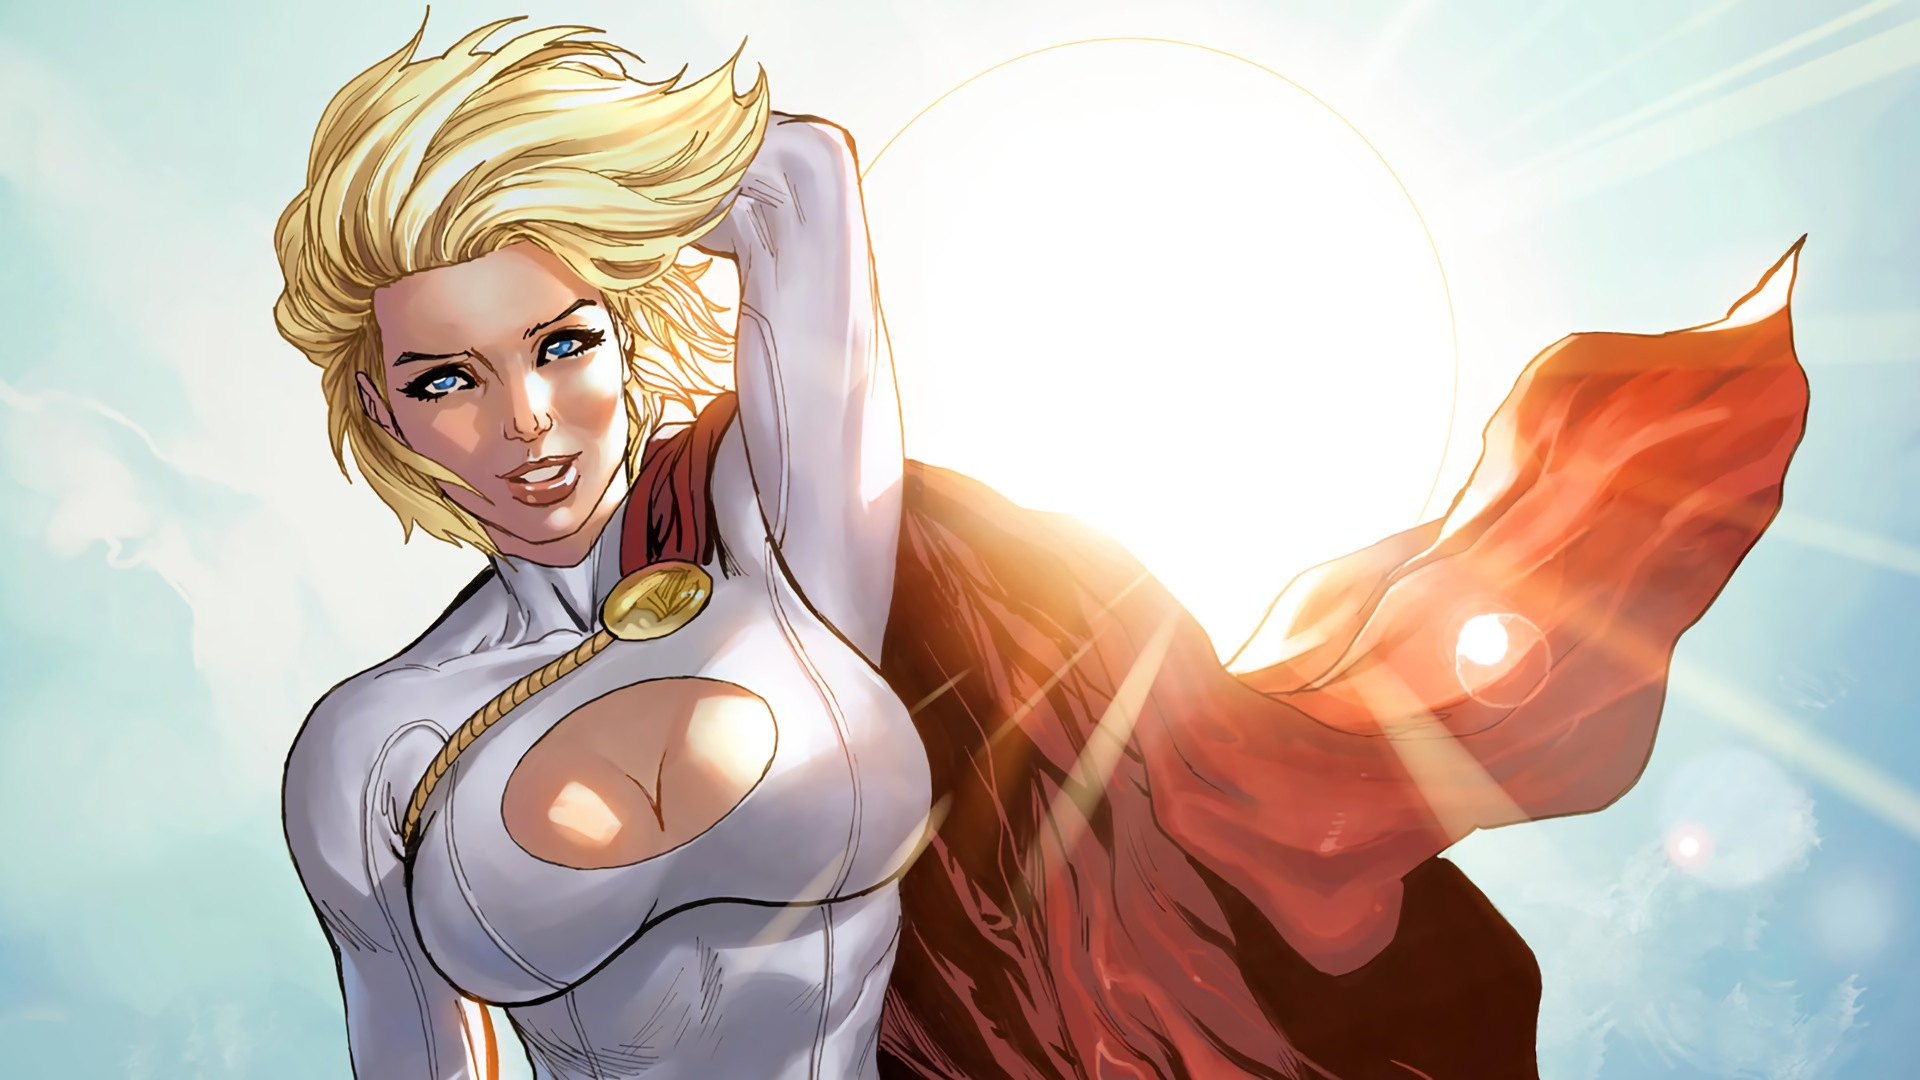 power girl full hd wallpaper and background image | 1920x1080 | id